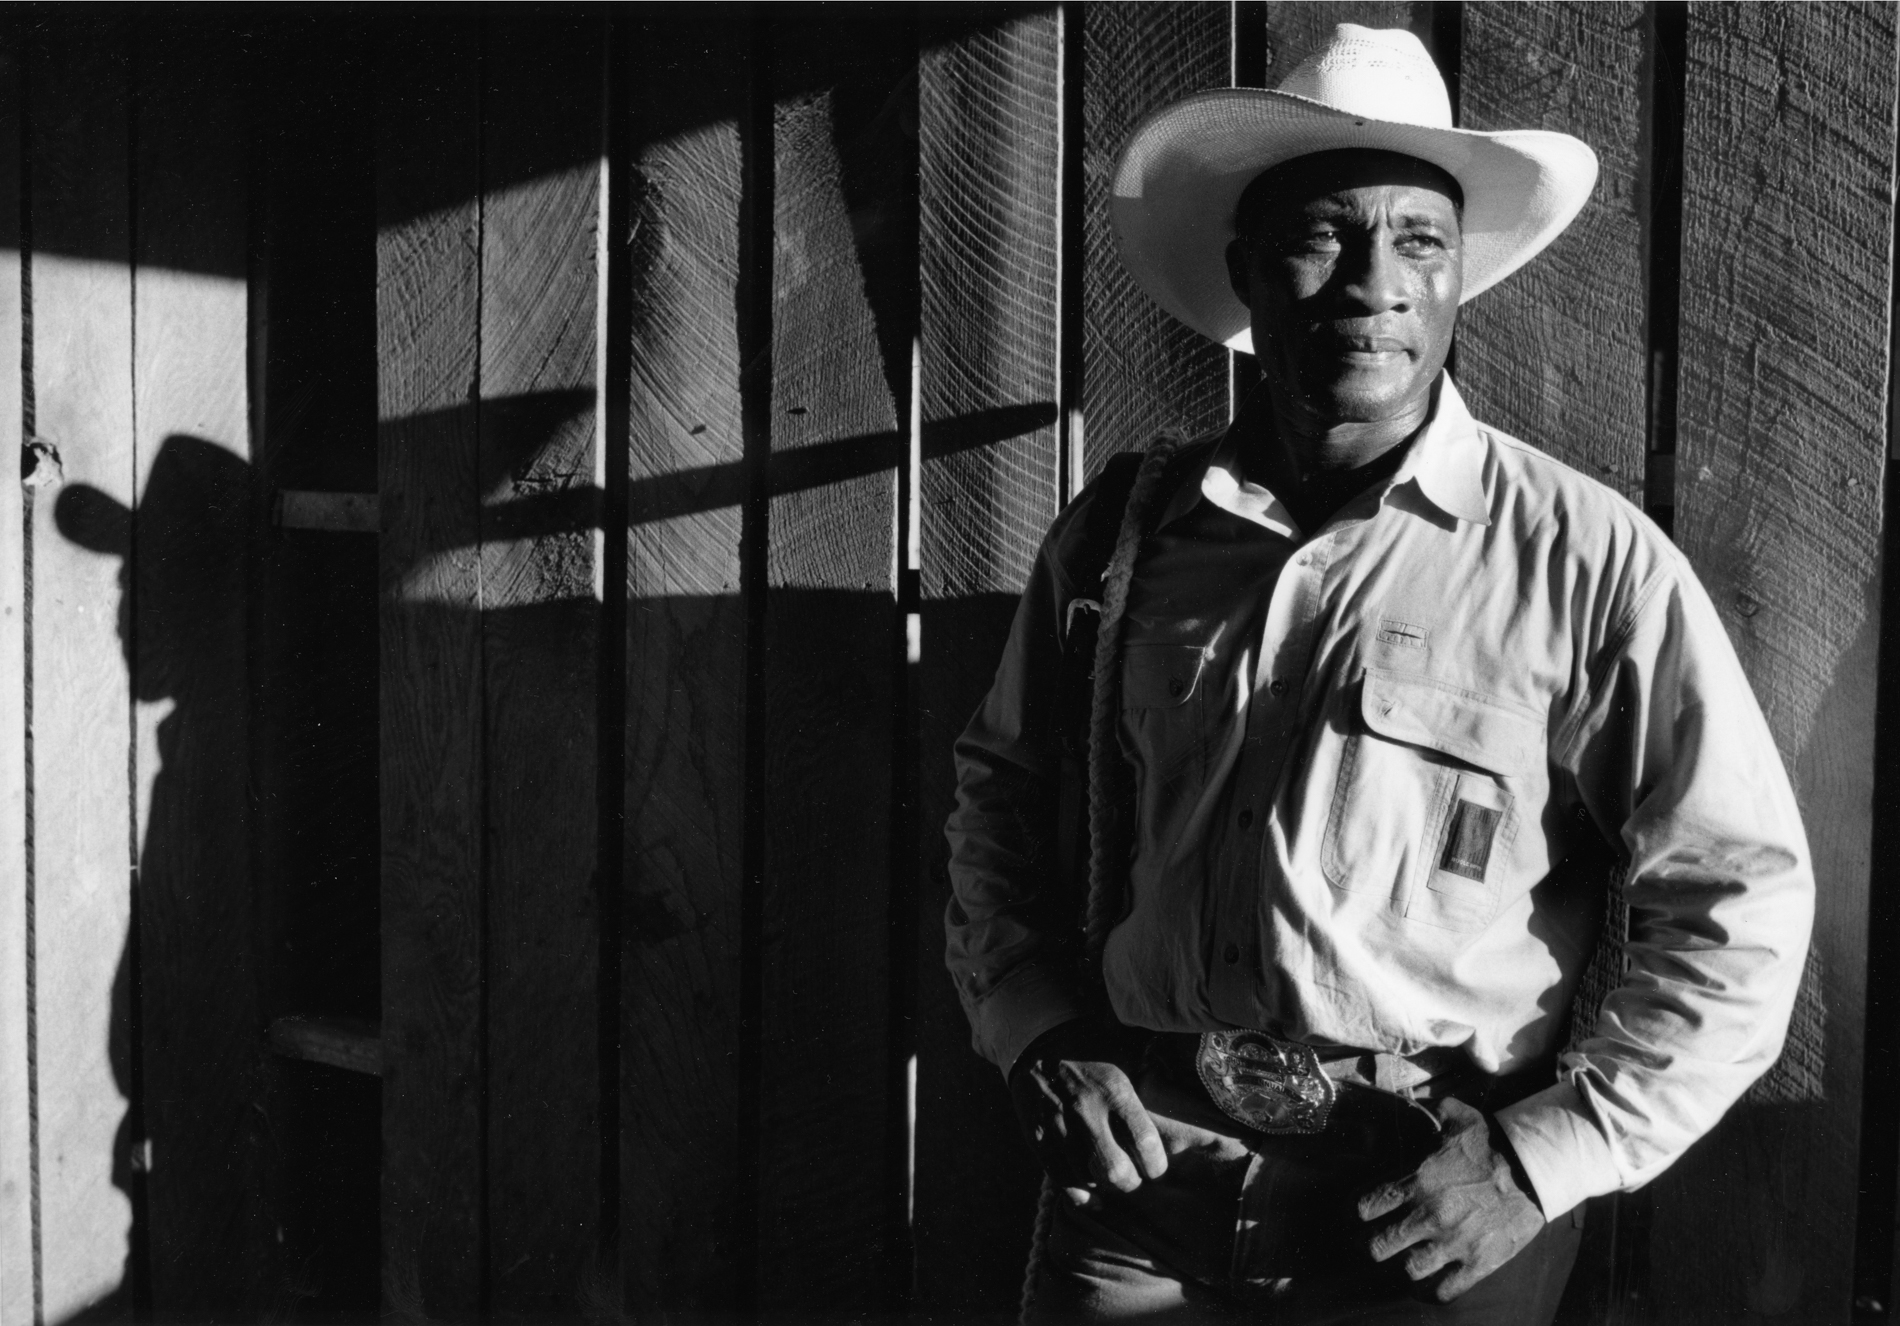 Oklahoman T.J. Smith was photographed in 1992 at a gay rodeo.